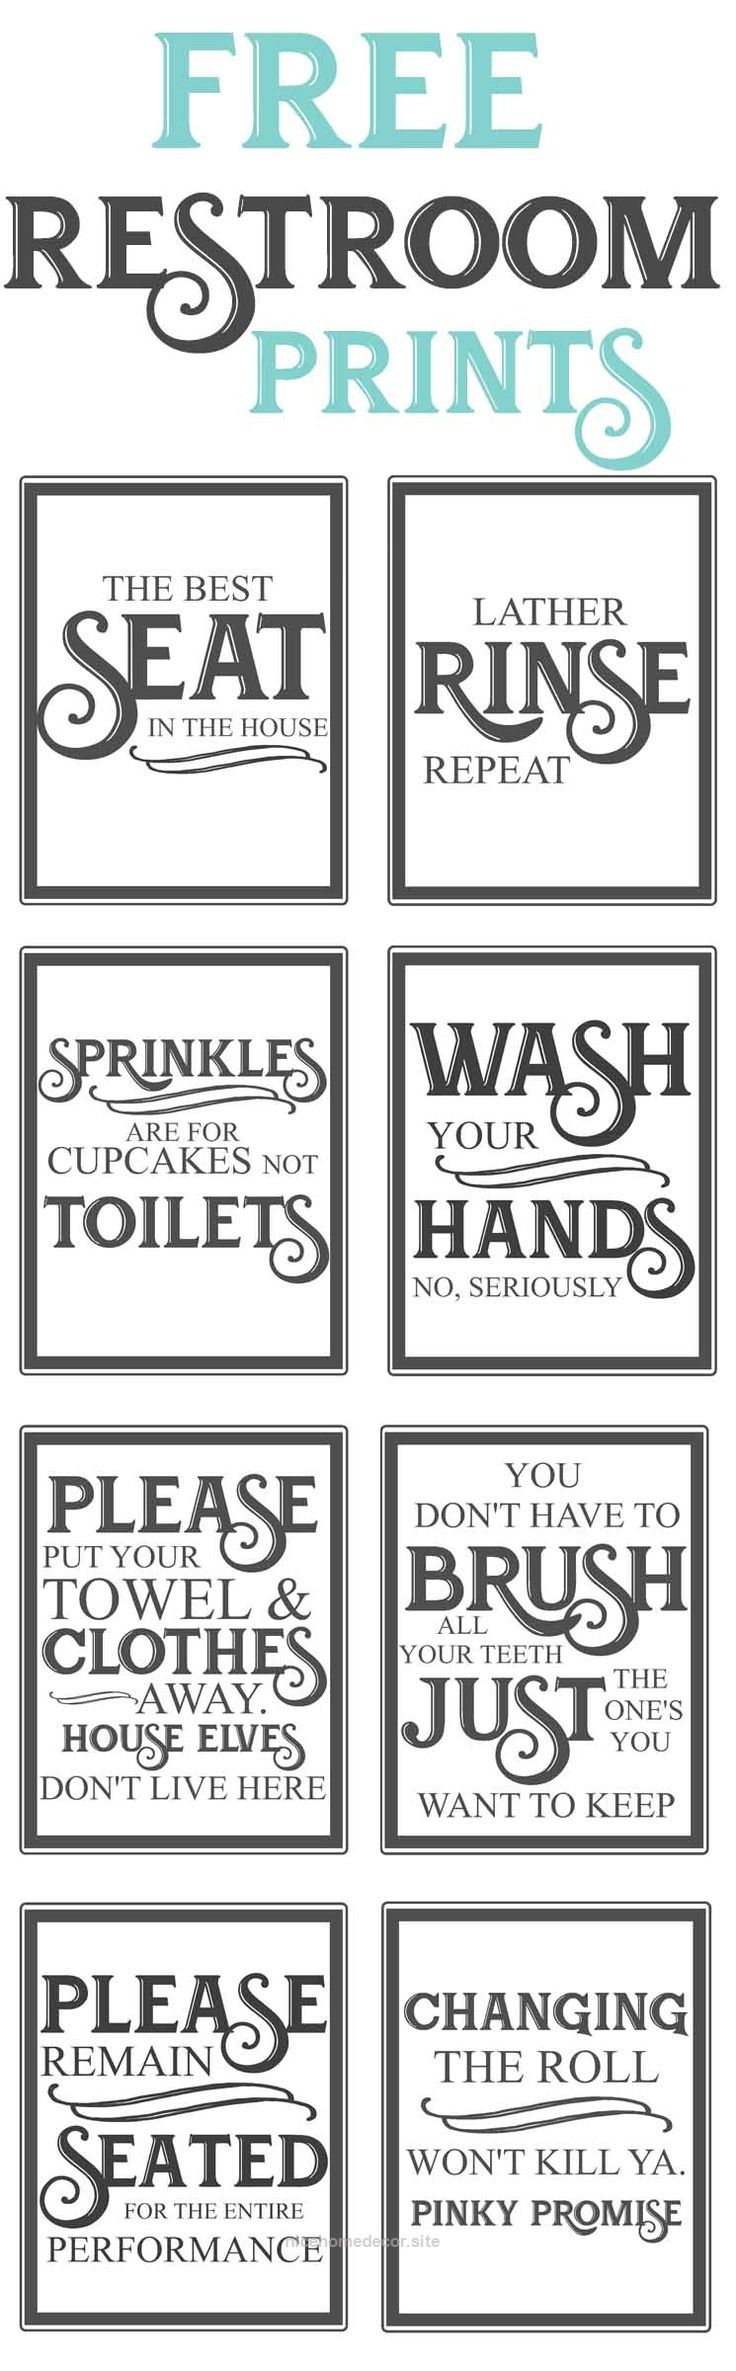 Free Vintage inspired bathroom printables-funny quotes to hang up in the restroo…  http://www.nicehomedecor.site/2017/07/21/free-vintage-inspired-bathroom-printables-funny-quotes-to-hang-up-in-the-restroo-2/